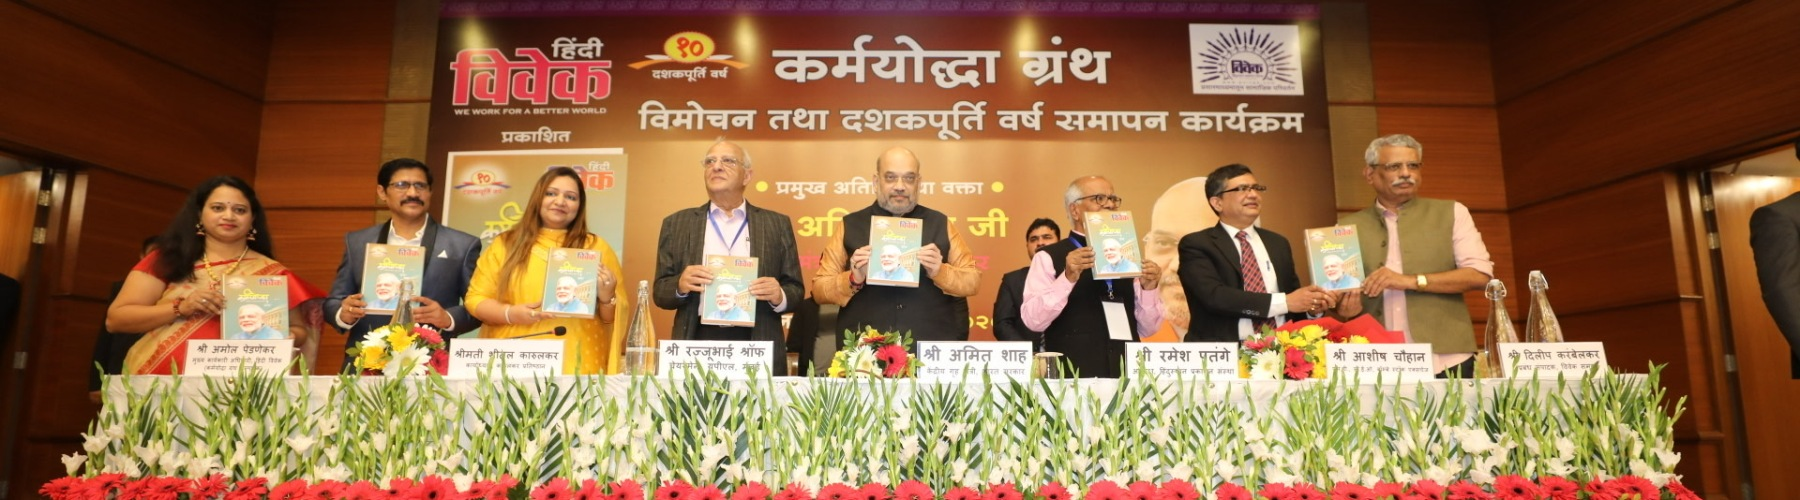 Union Minister for Home Affairs, Shri Amit Shah released a book Karmayoddha Granth on the life of Prime Minister Shri Narendra Modi, in New Delhi, on January 7, 2019.